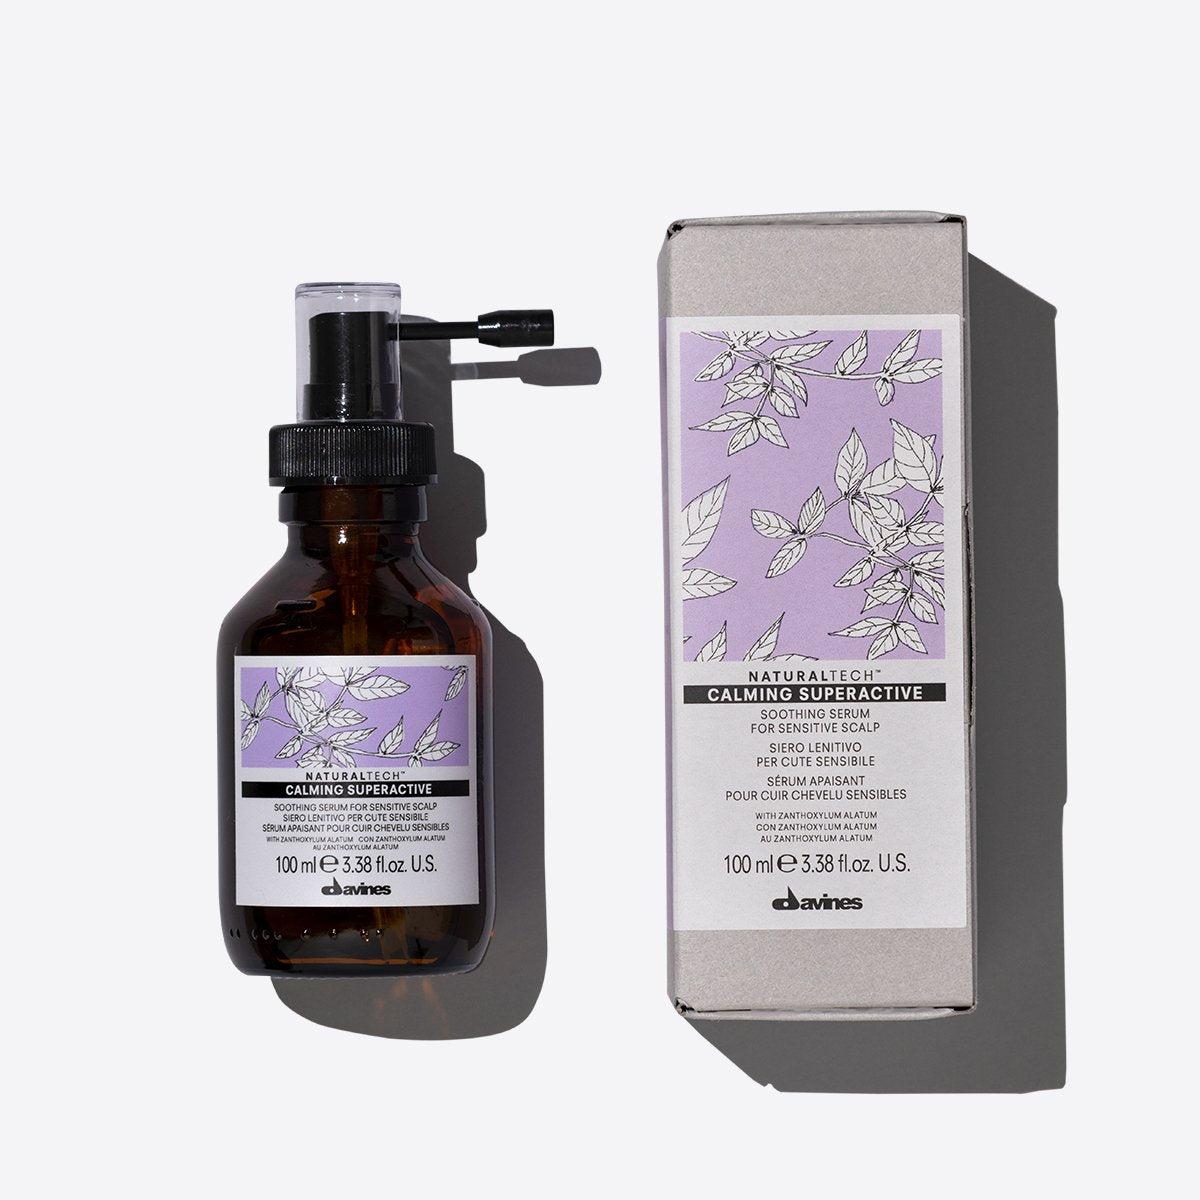 Naturaltech Calming Superactive by Davines